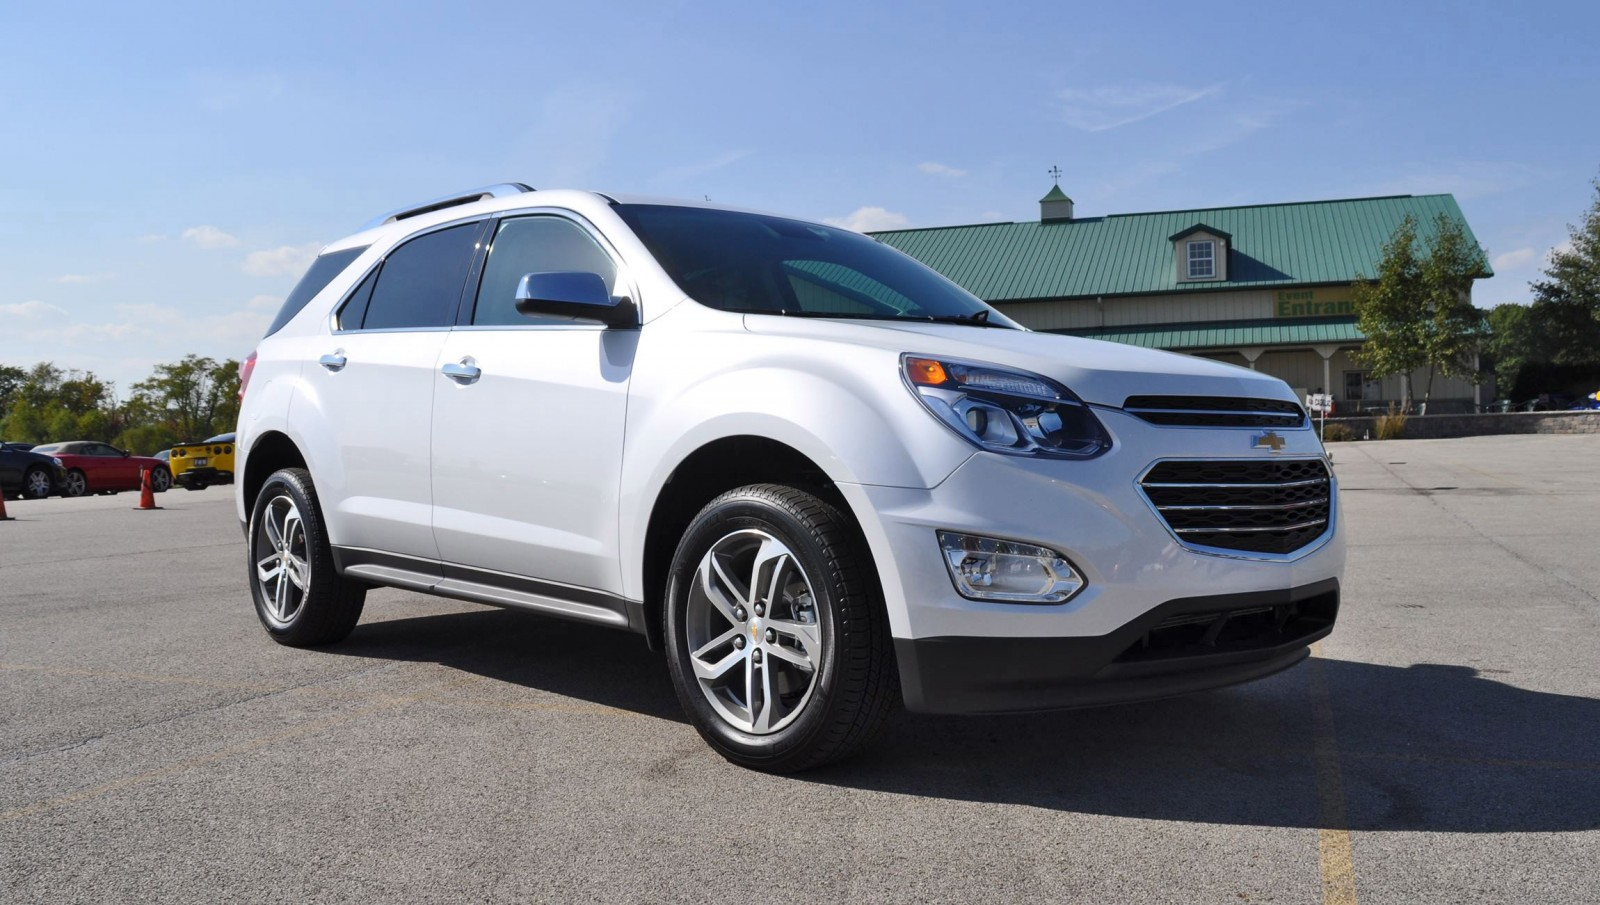 2016 chevrolet equinox. Black Bedroom Furniture Sets. Home Design Ideas